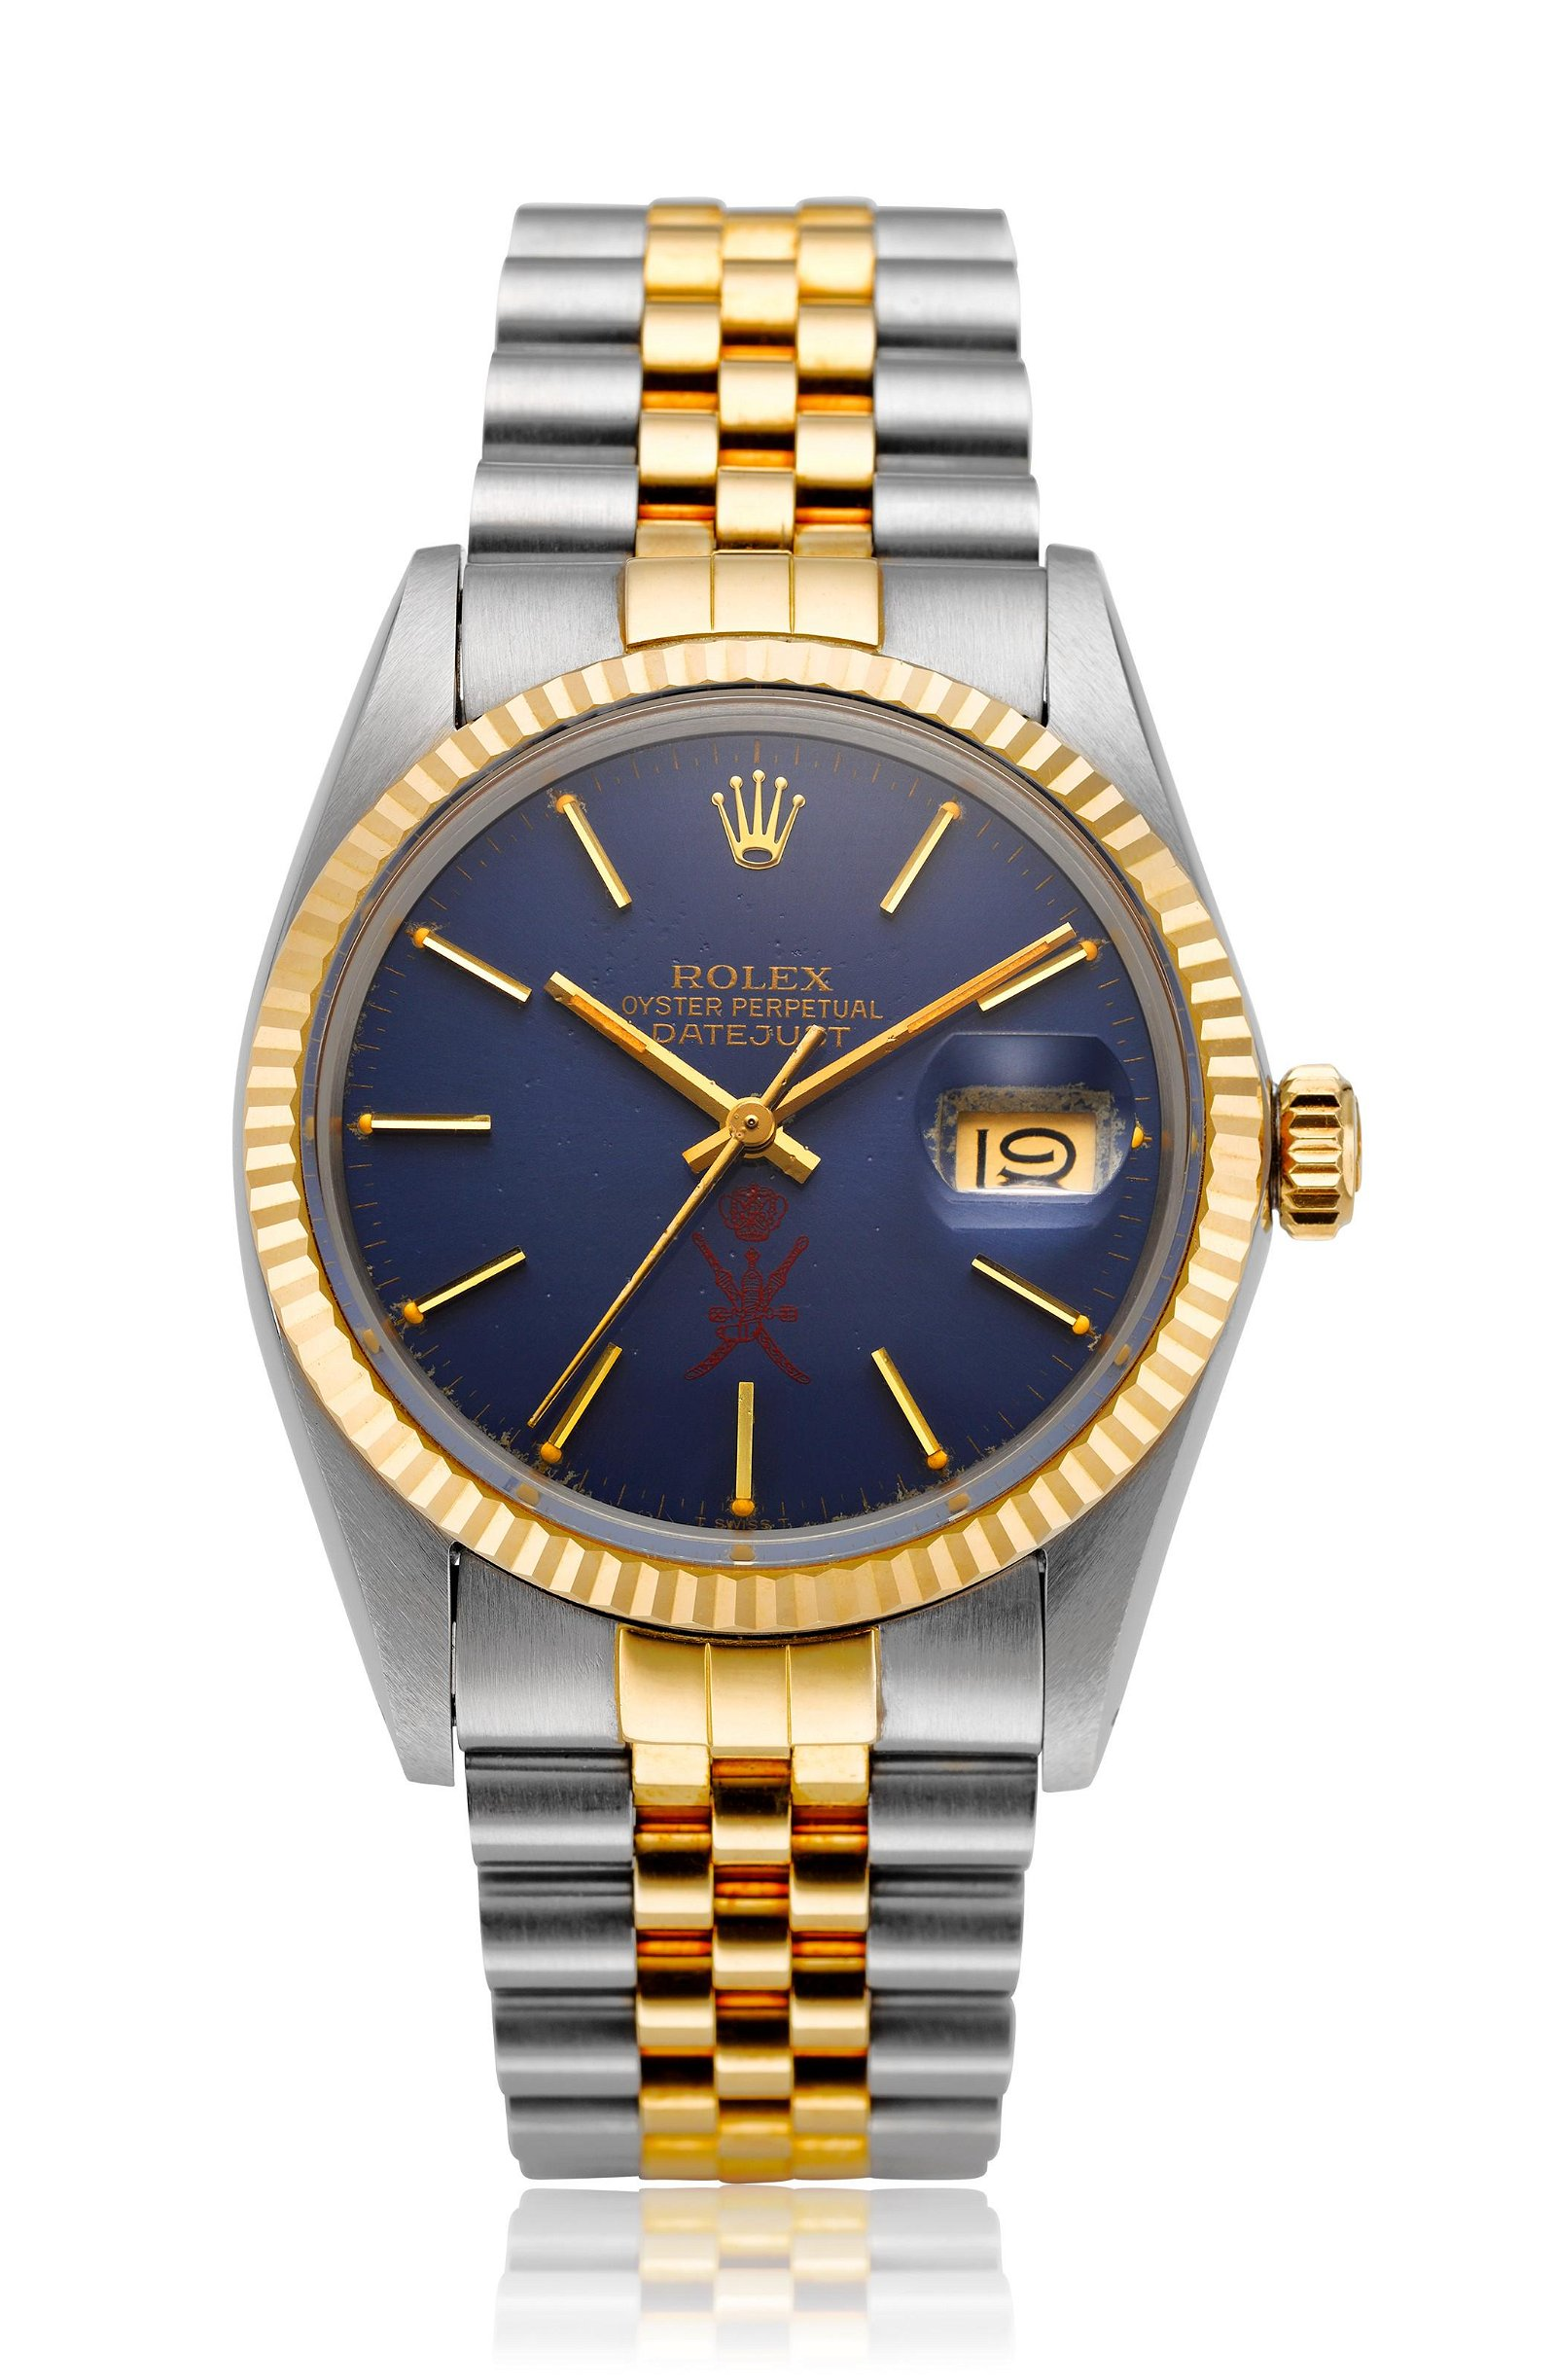 ROLEX, TWO-TONE DATEJUST WITH OMANI DIAL, REF. 16013